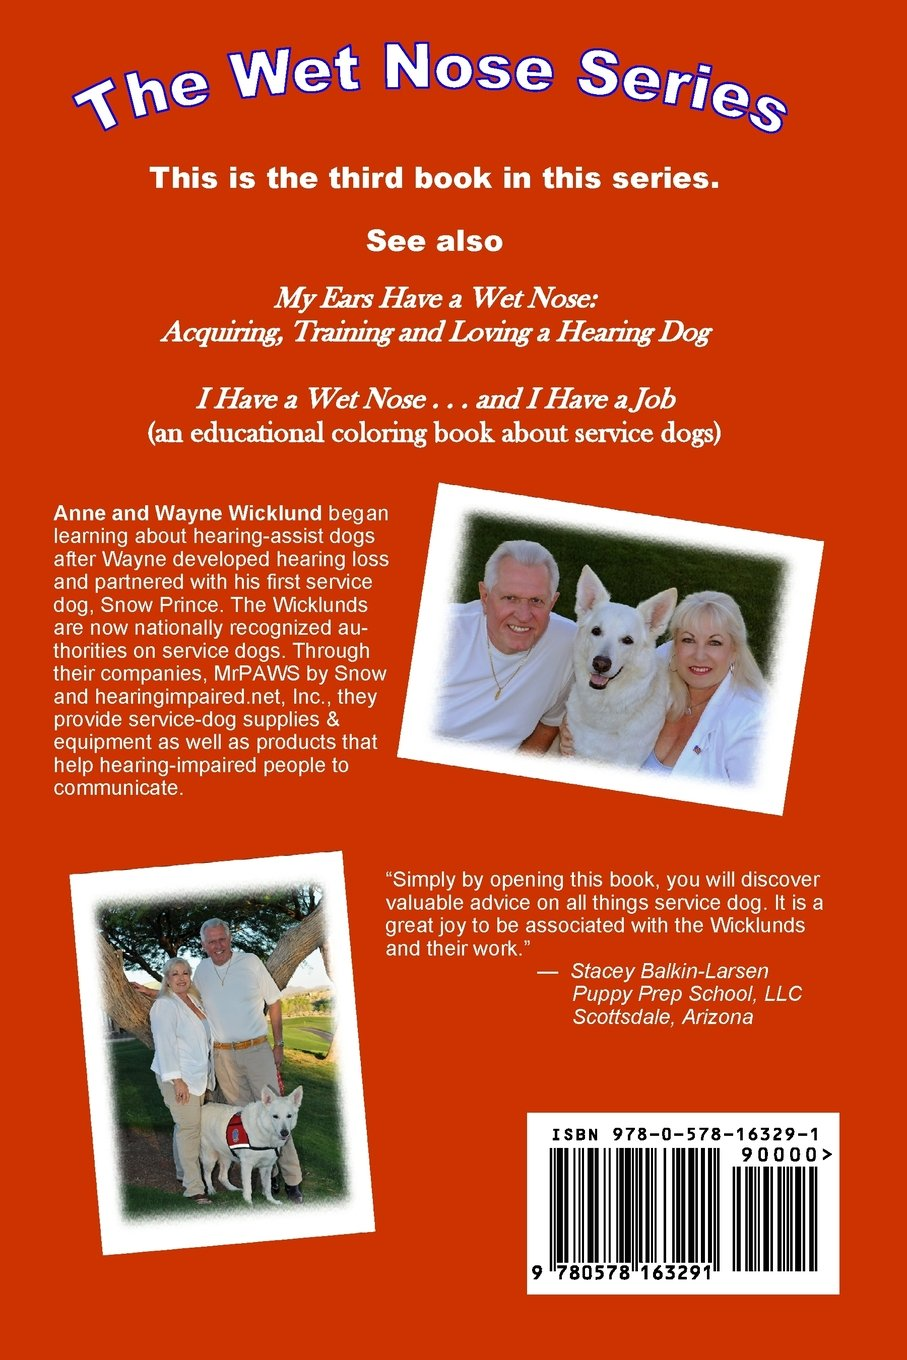 Handbook For Service Dogs Truths And Myths About Working The Wet Nose Series Volume 3 Anne Wicklund Wayne 9780578163291 Amazon